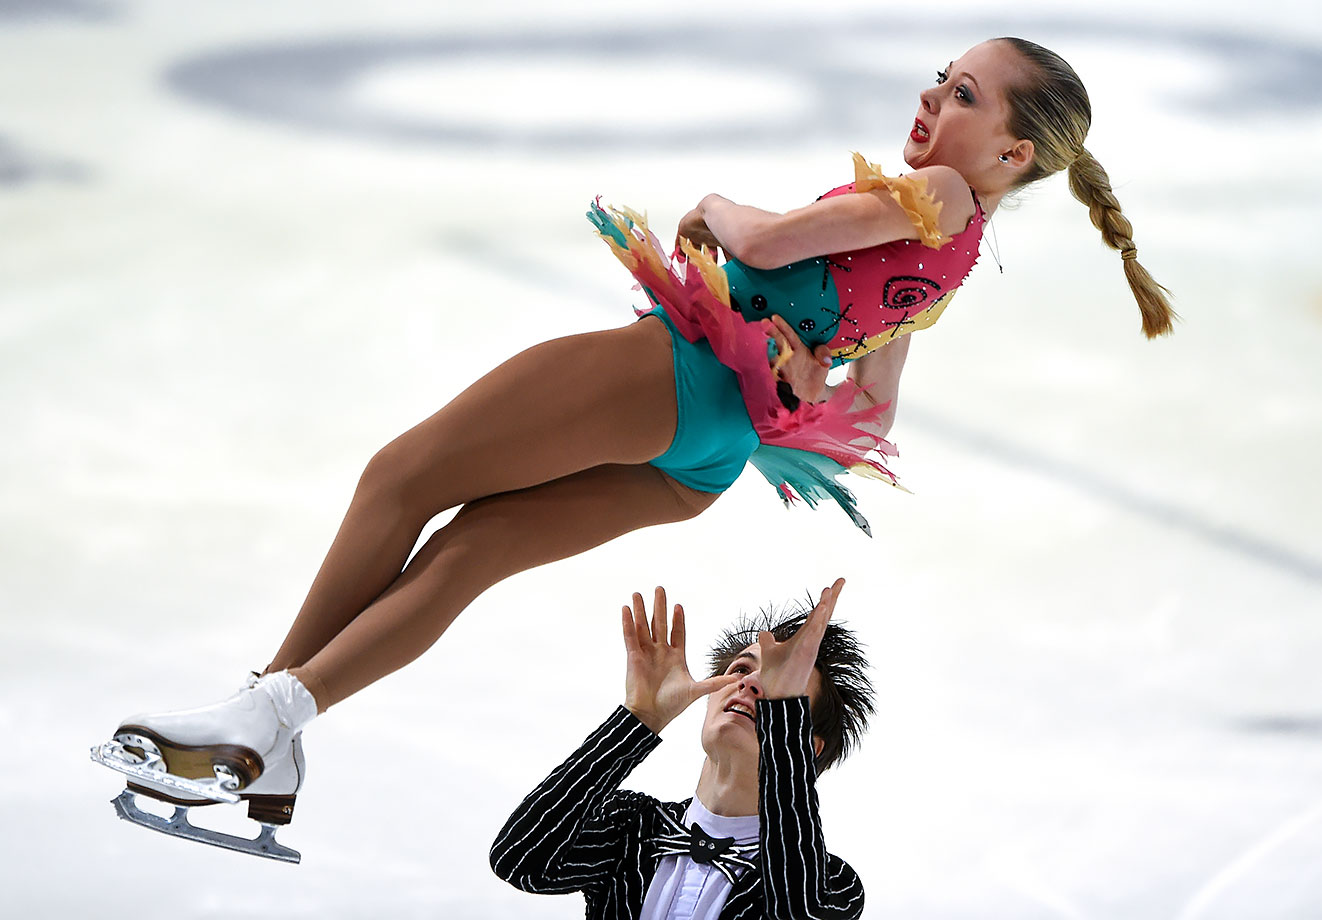 Sarah Rose and Joseph Goodpaster (USA) perform their Free Program in the Figure Skating Mixed NOC Team Pairs event at Hamar Olympic Amphitheatre on Feb. 20, 2016 during the Winter Youth Olympic Games in Lillehammer, Norway.